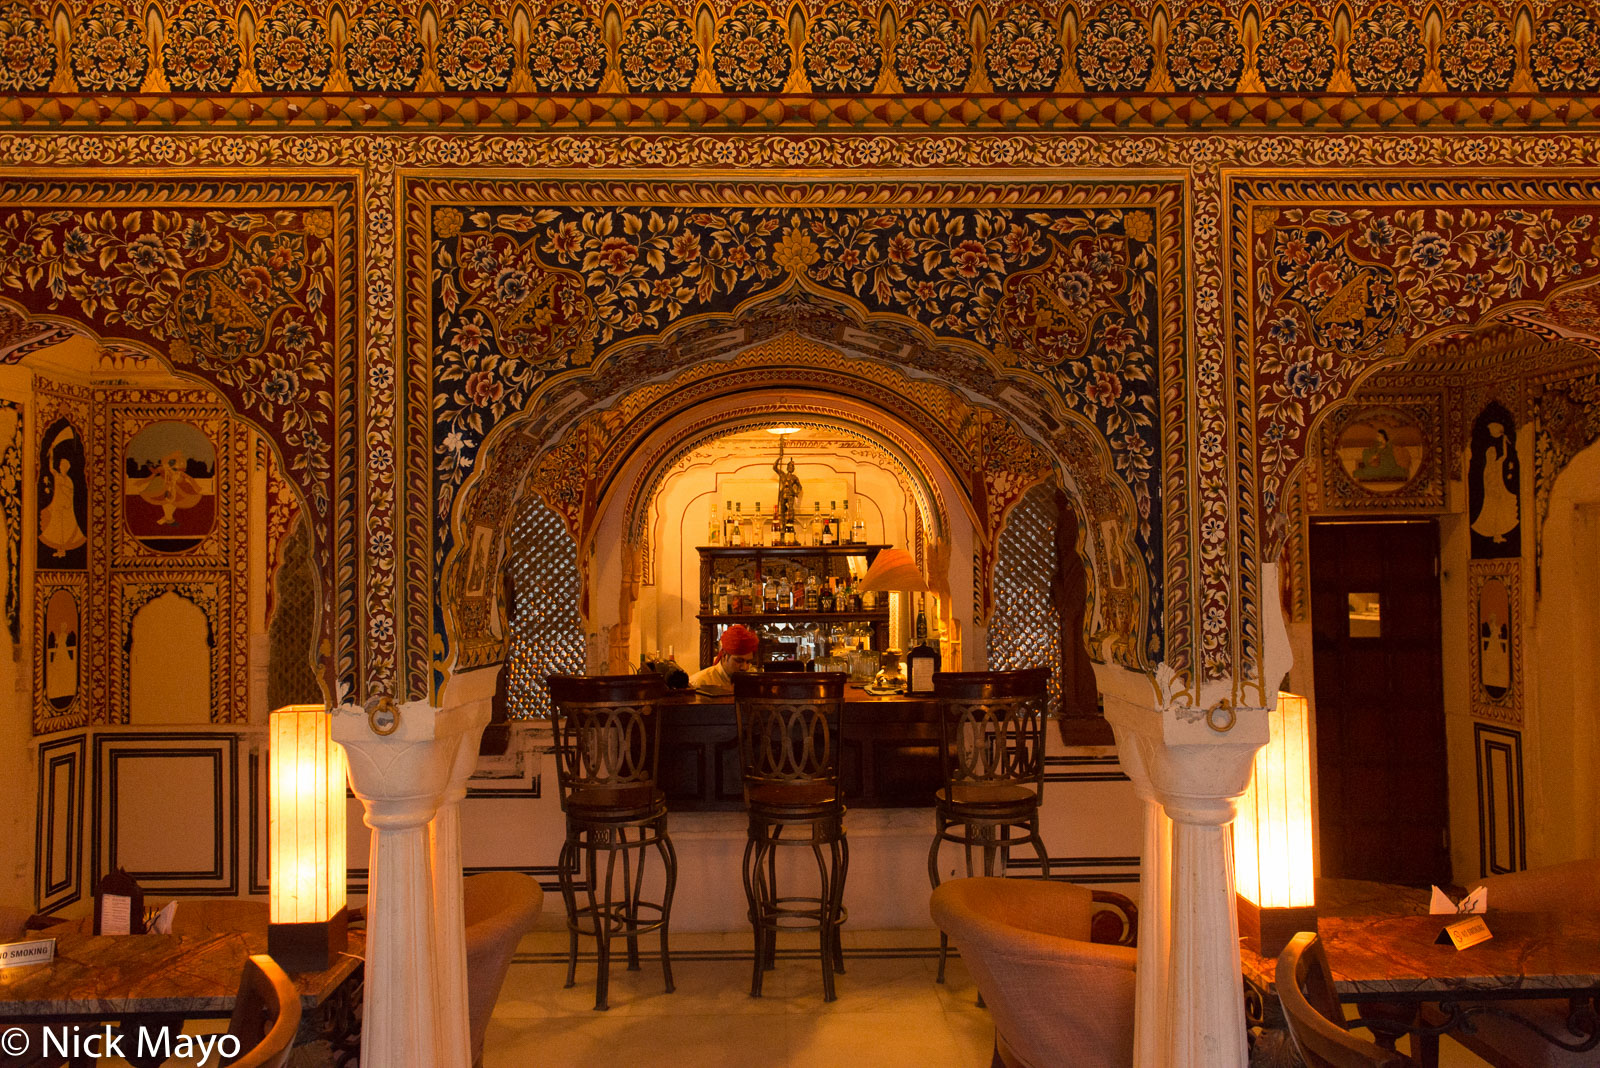 Bar, India, Mural, Rajasthan, photo